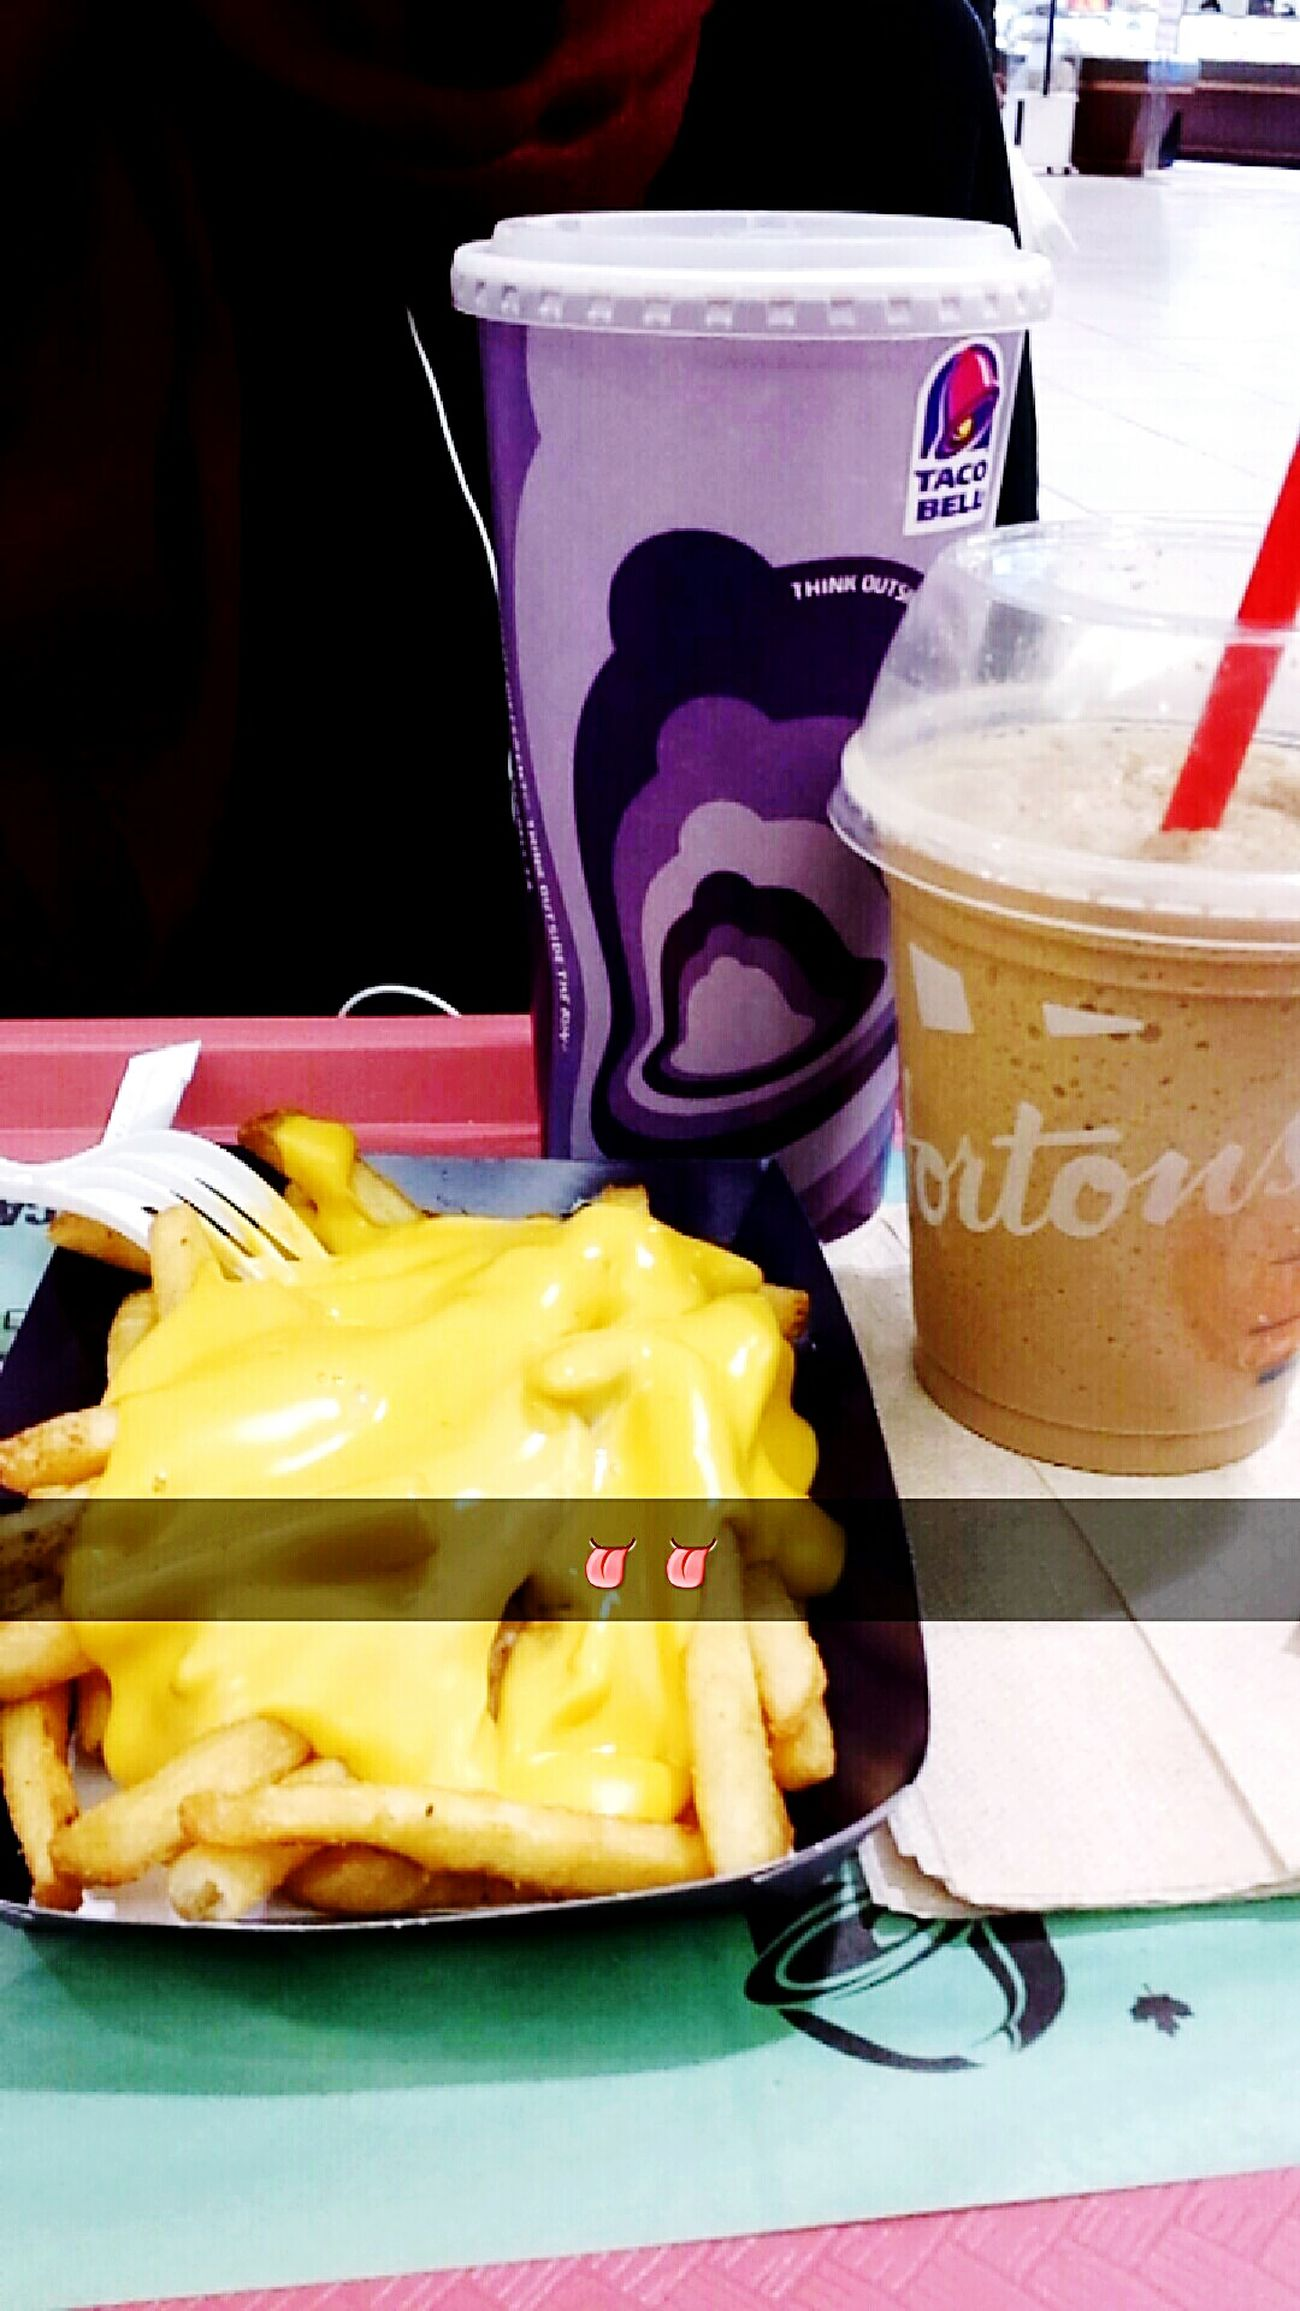 Archival Drink Food No People Delicious Yummy Ready-to-eat Freshness Close-up Indoors  Food And Drink Fries Fries Fries Icedcappuccino Cheese Cheese Fries Timhortons Taco Bell Foodcourt Mall Canada City City Life